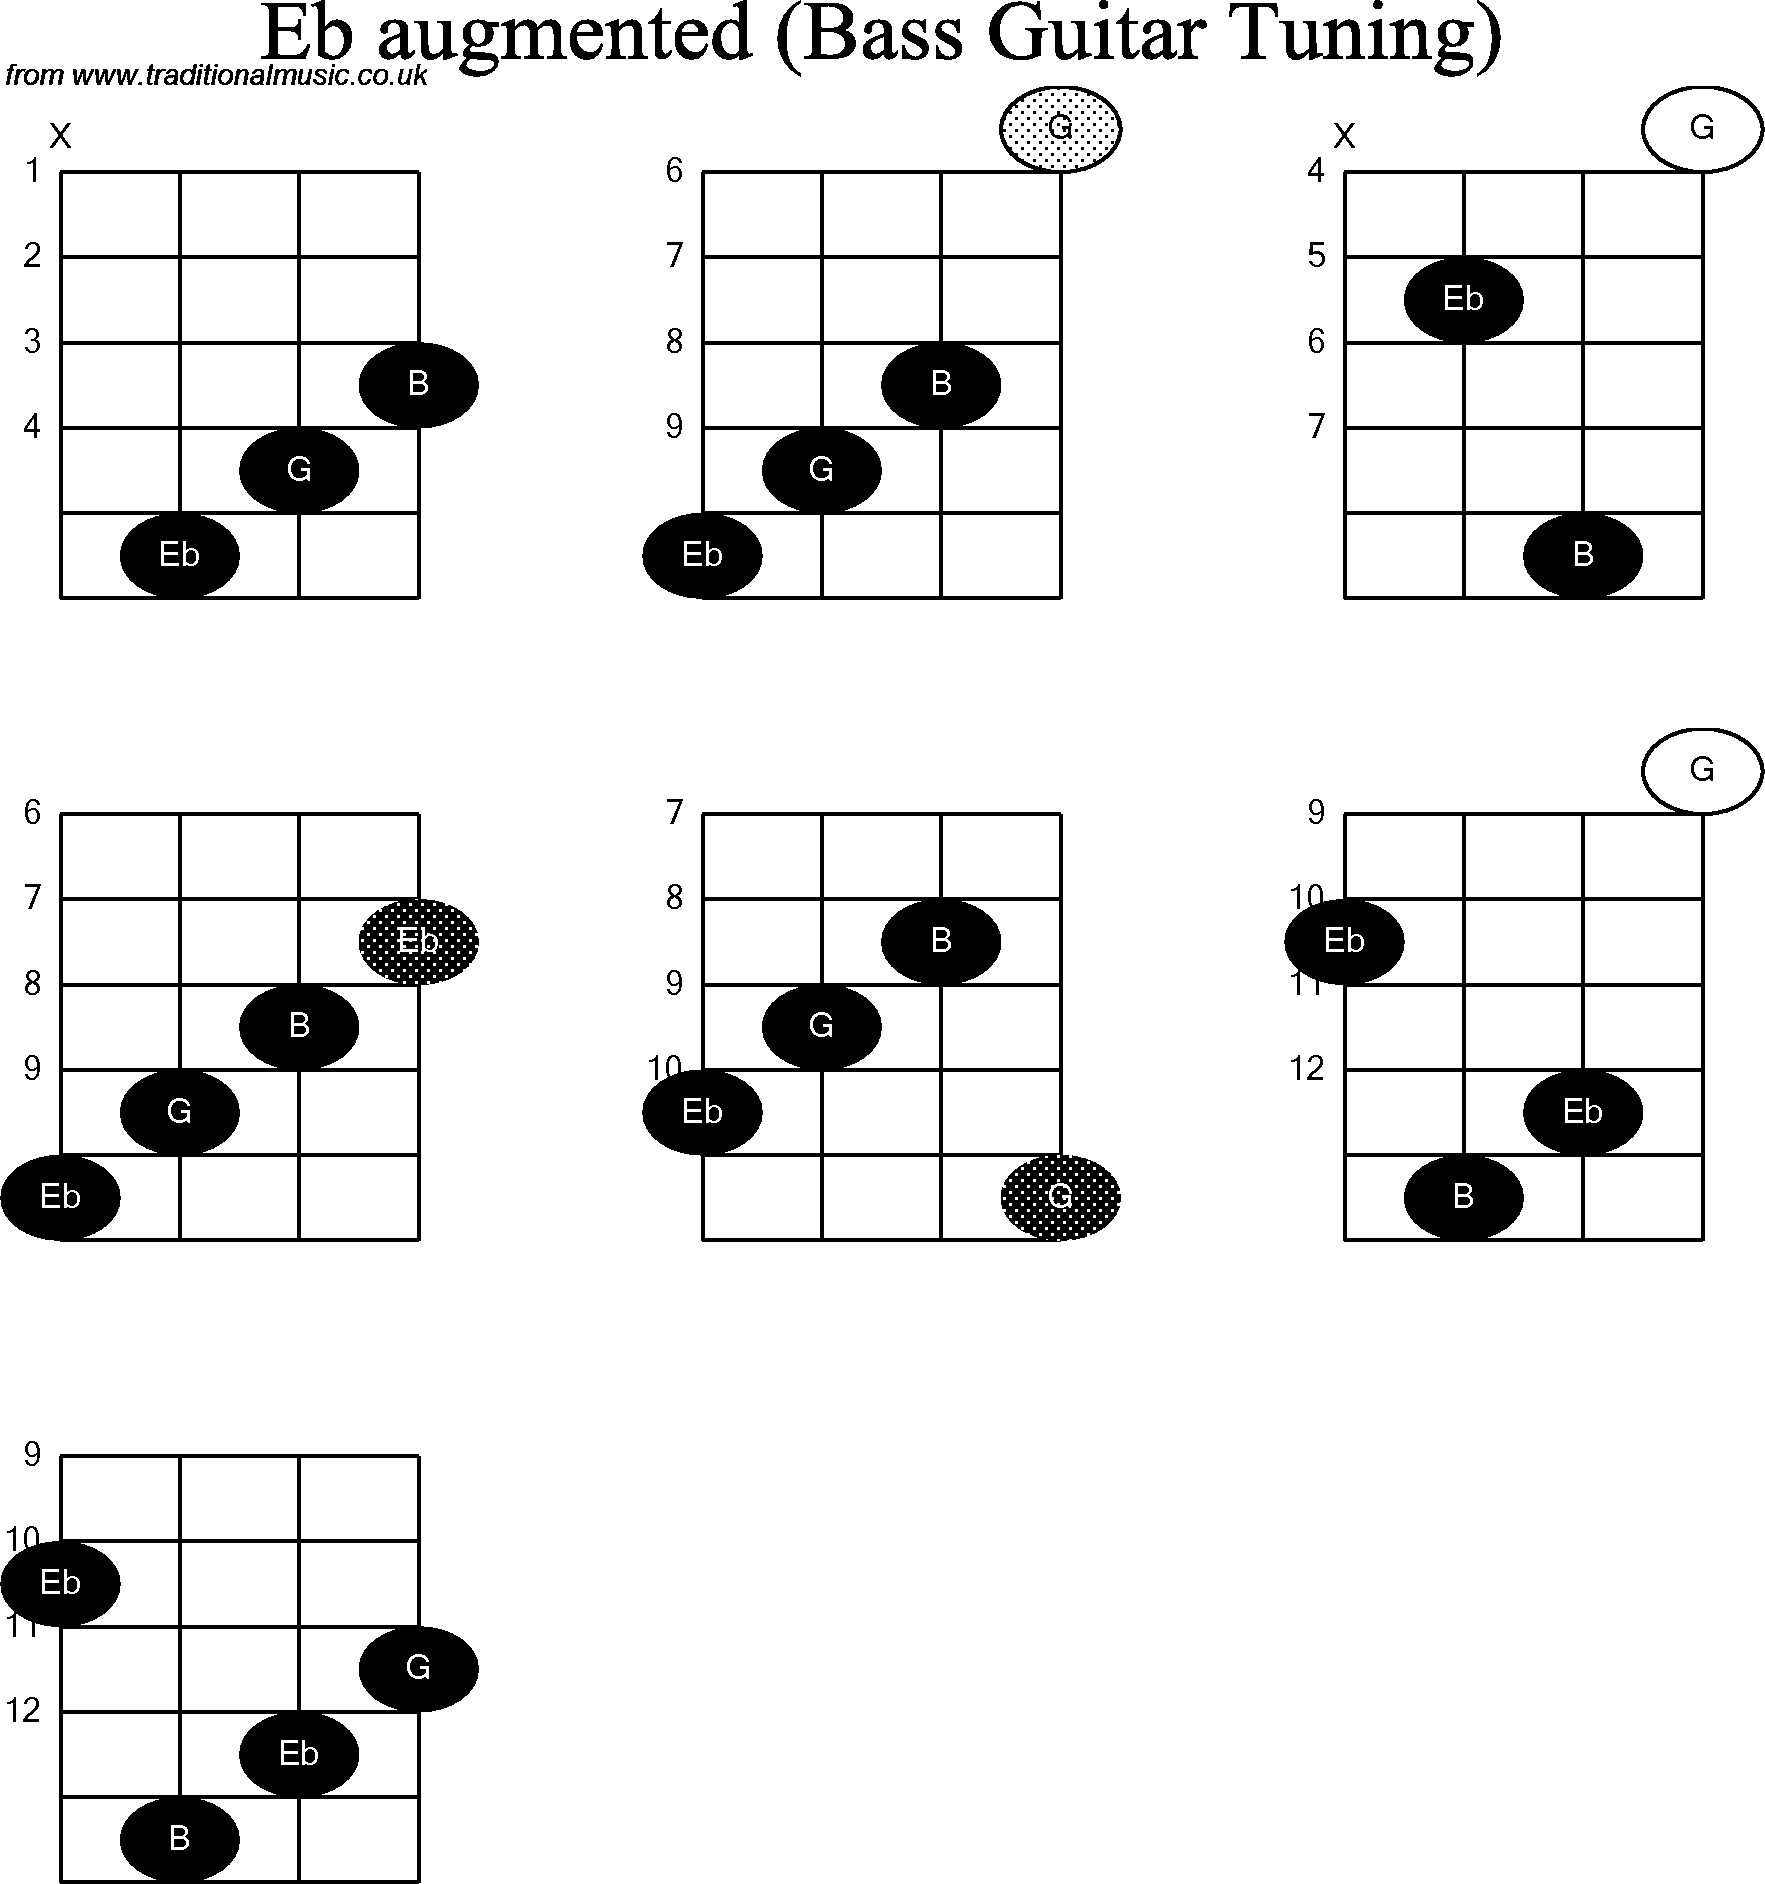 bass guitar chord diagrams for  eb augmented